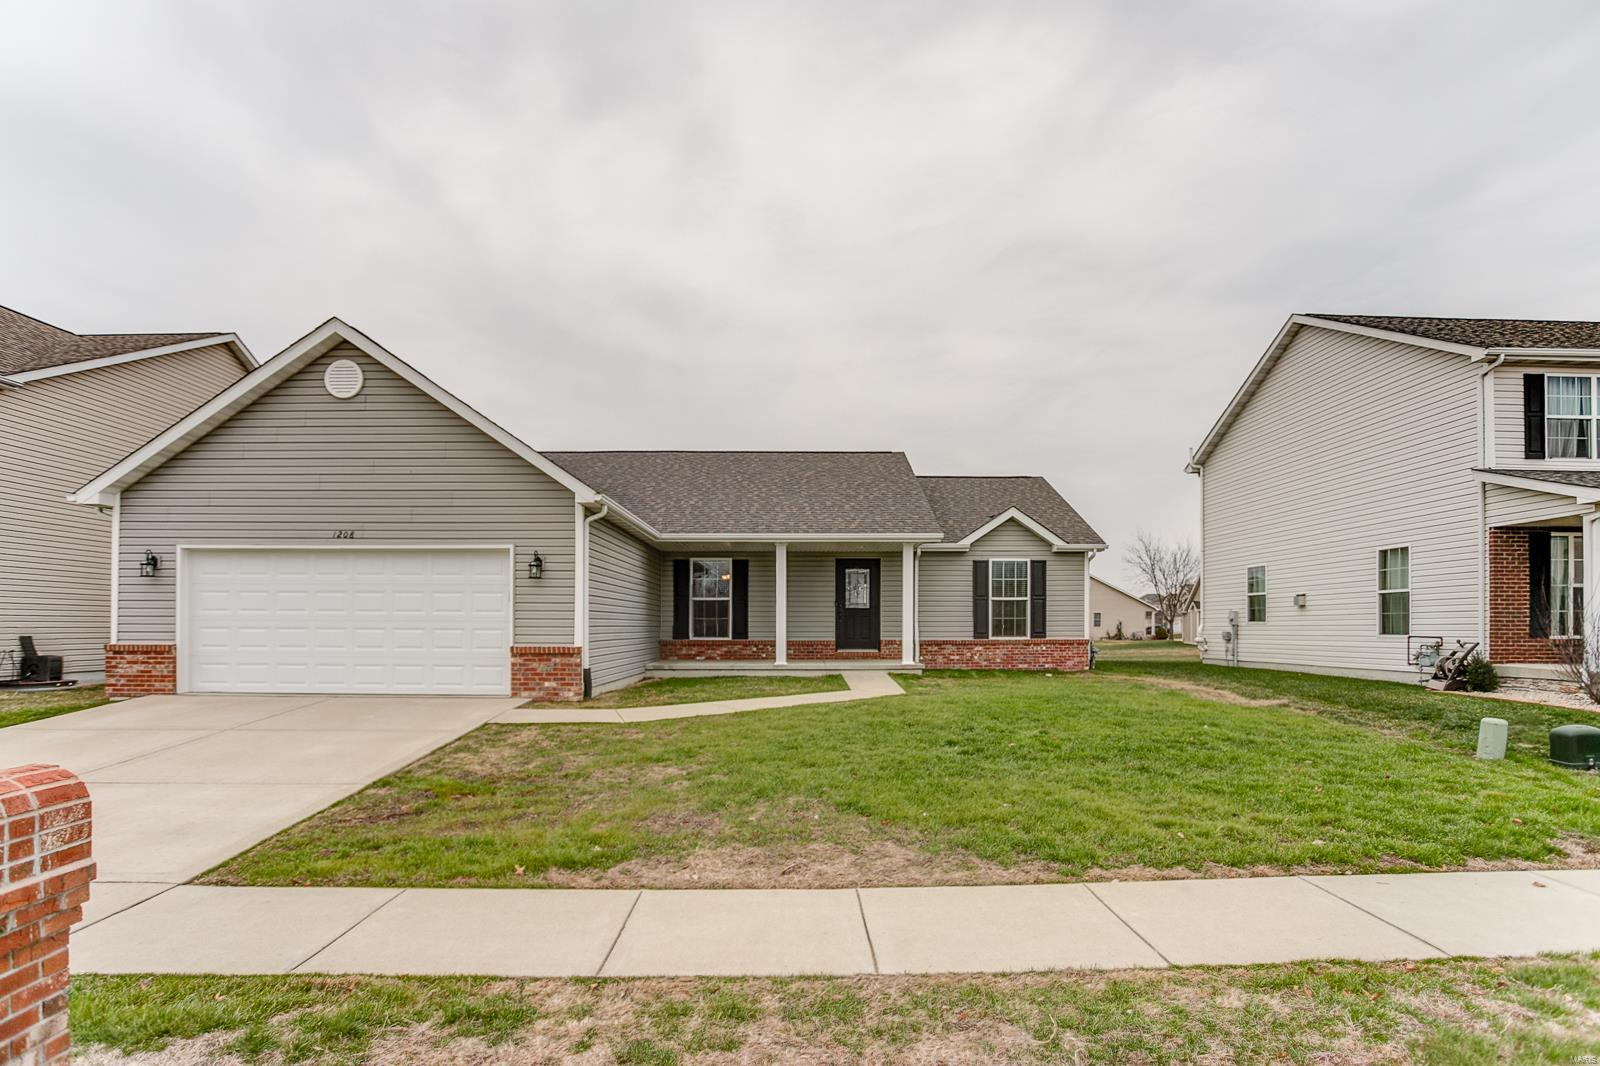 1208 Gulfstream Way Property Photo - Mascoutah, IL real estate listing